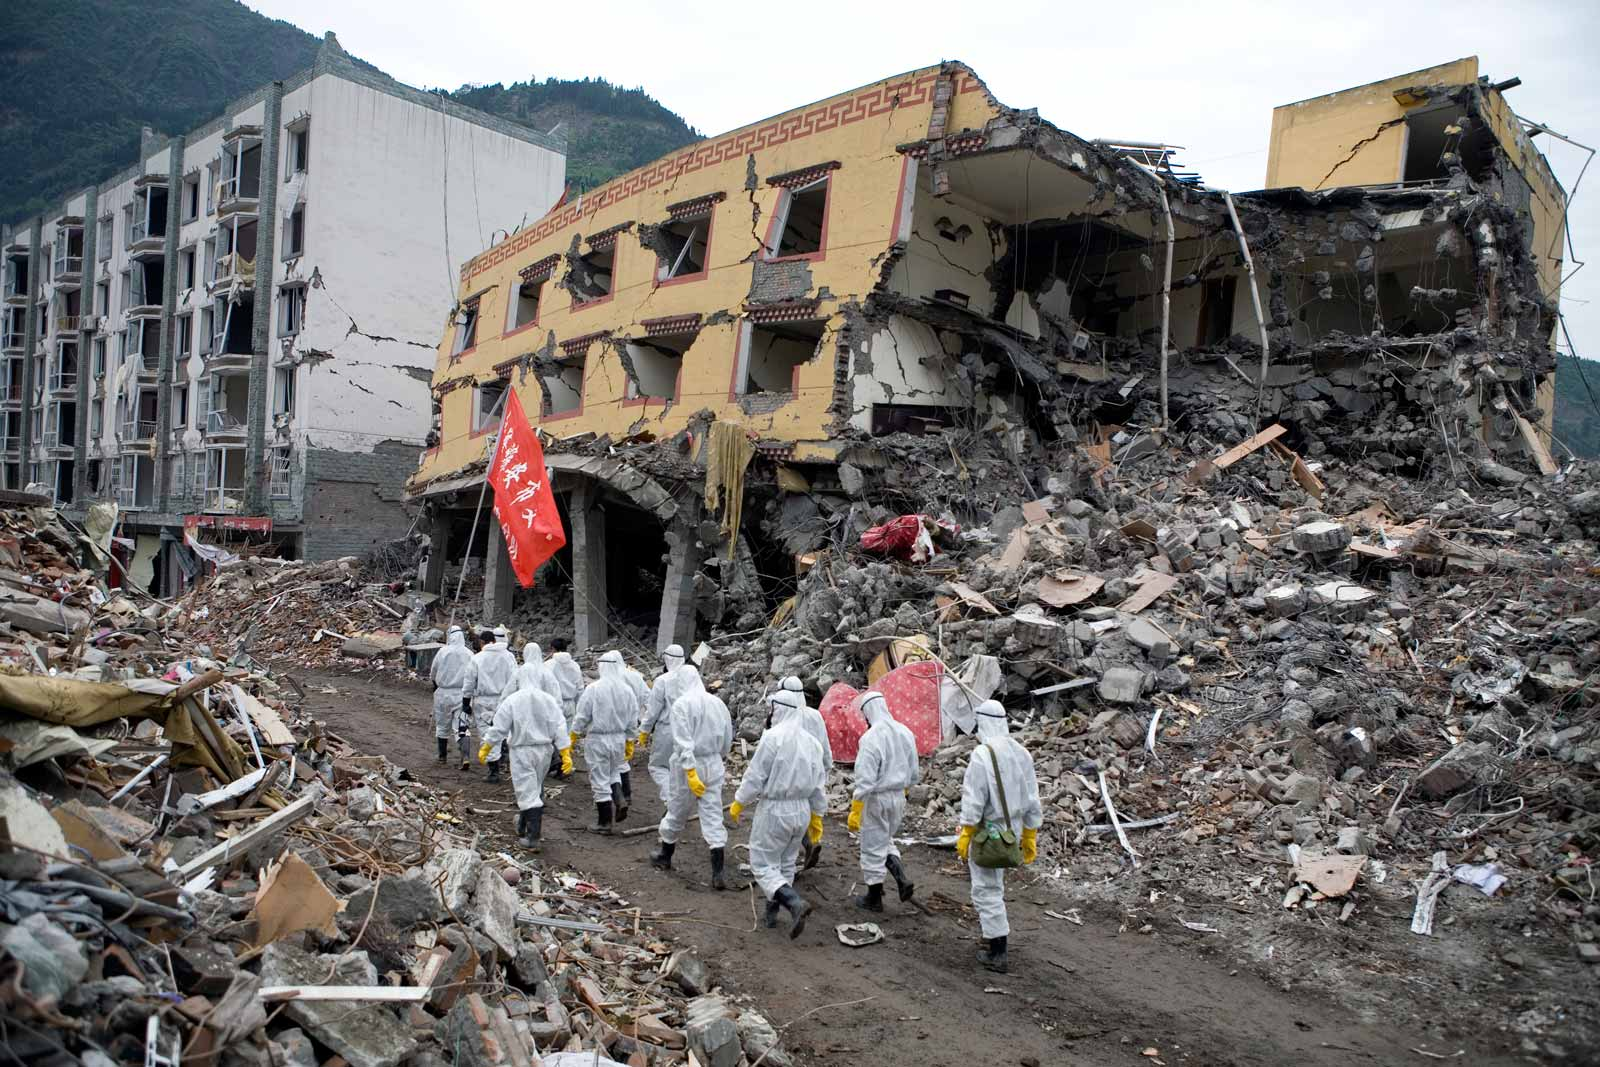 essay about sichuan earthquake The 2008 sichuan earthquake killed 87,000 people and left 5 million homeless in response to the devastation, an unprecedented wave of volunteers and civic associations streamed into sichuan.